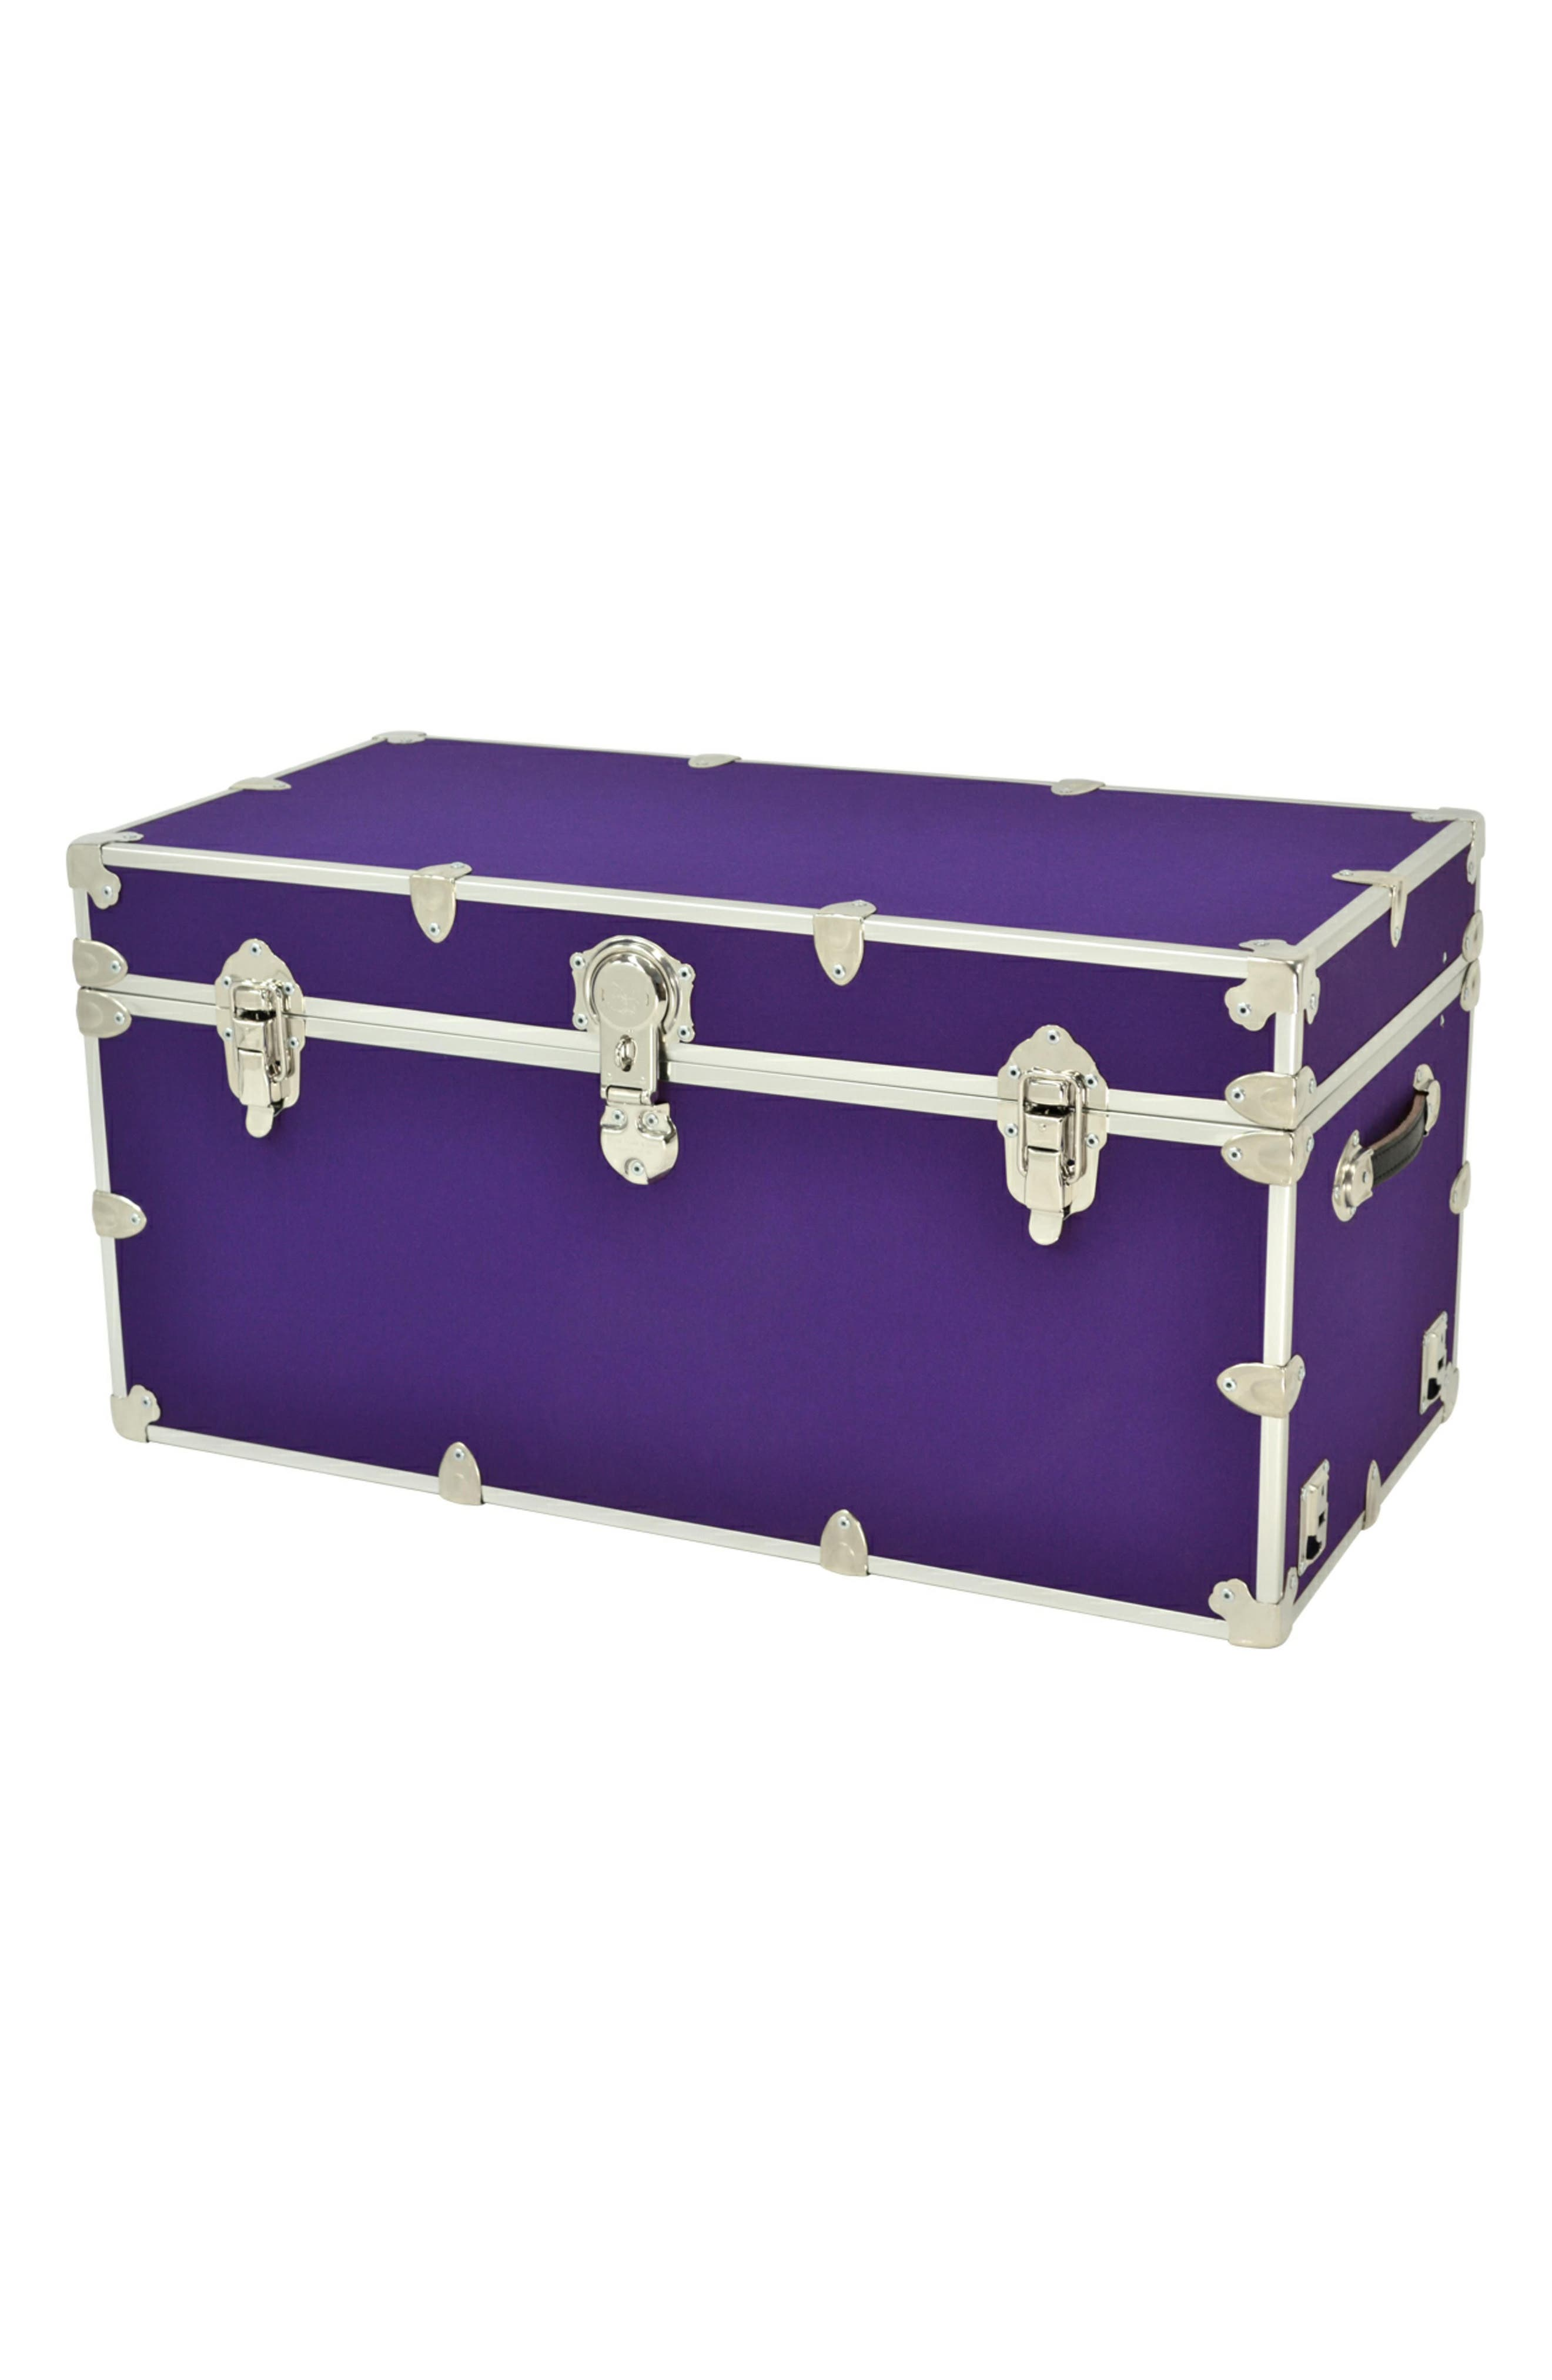 Rhino Trunk  Case Xxl Armor Trunk Size One Size  Purple